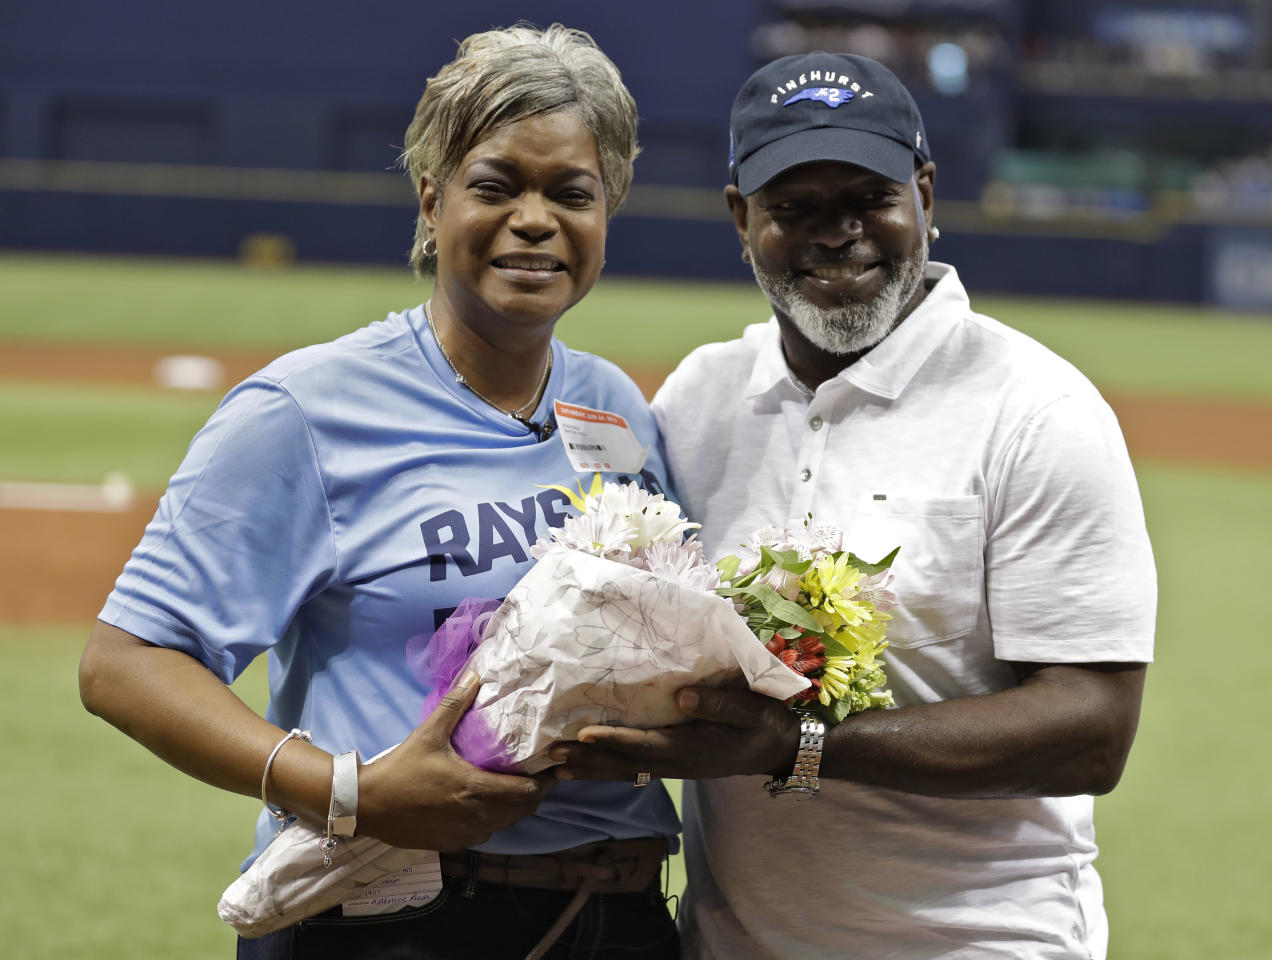 Marsha Smith-Hill, left, poses with her brother, NFL Hall of Fame player Emmitt Smith, after throwing out a ceremonial first pitch before a baseball game between the Tampa Bay Rays and the Baltimore Orioles, Saturday, June 24, 2017, in St. Petersburg, Fla. Smith-Hill is a cancer survivor. (AP Photo/Chris O'Meara)